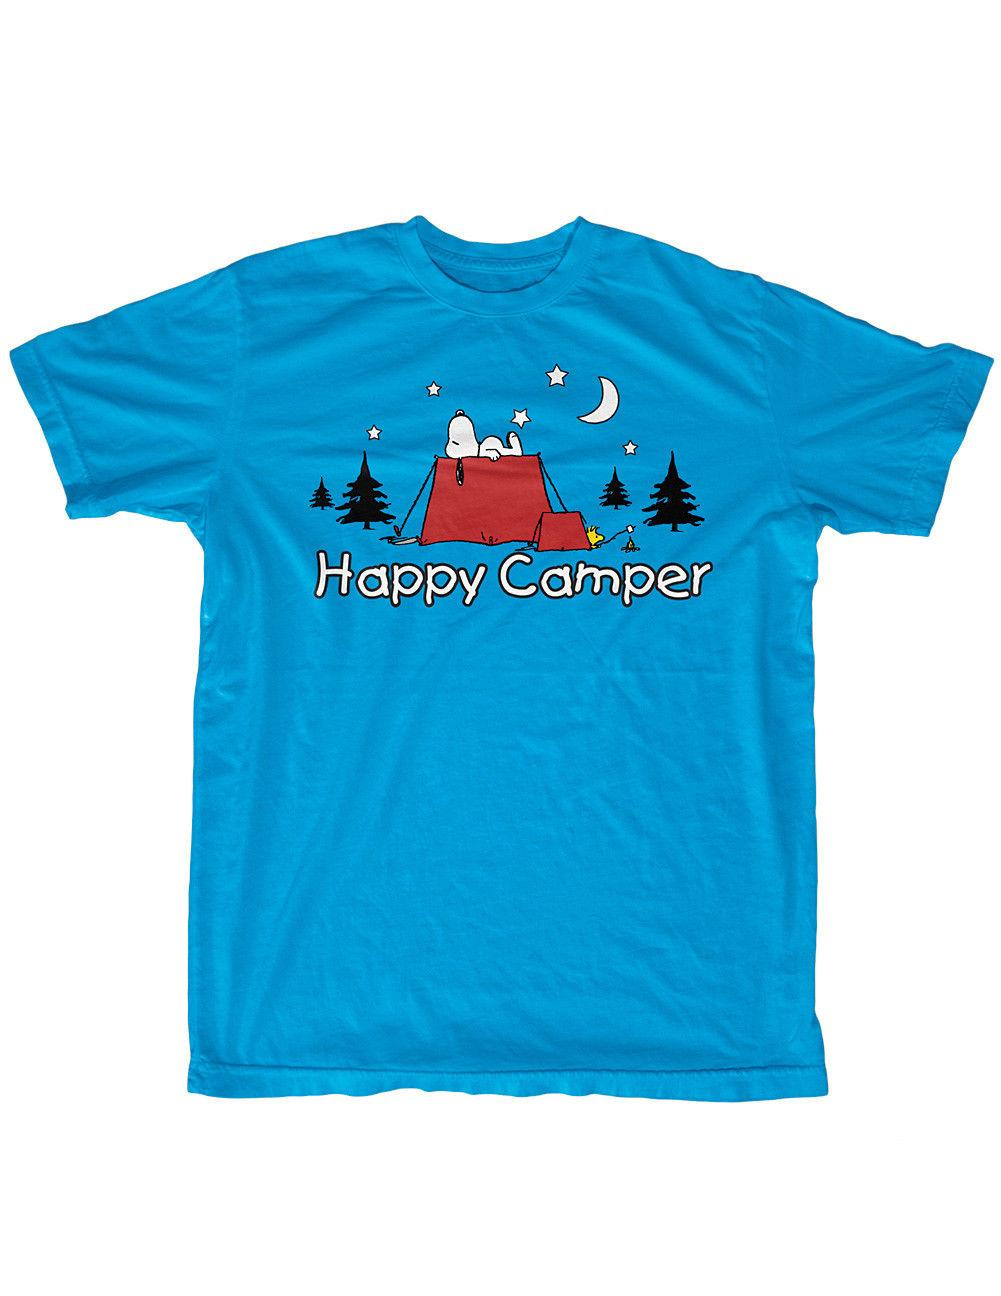 Details zu NEW NWT Snoopy Woodstock Happy Camper T-Shirt - Pup Tent Under  The Stars - XLFunny free shipping Unisex Casual gift